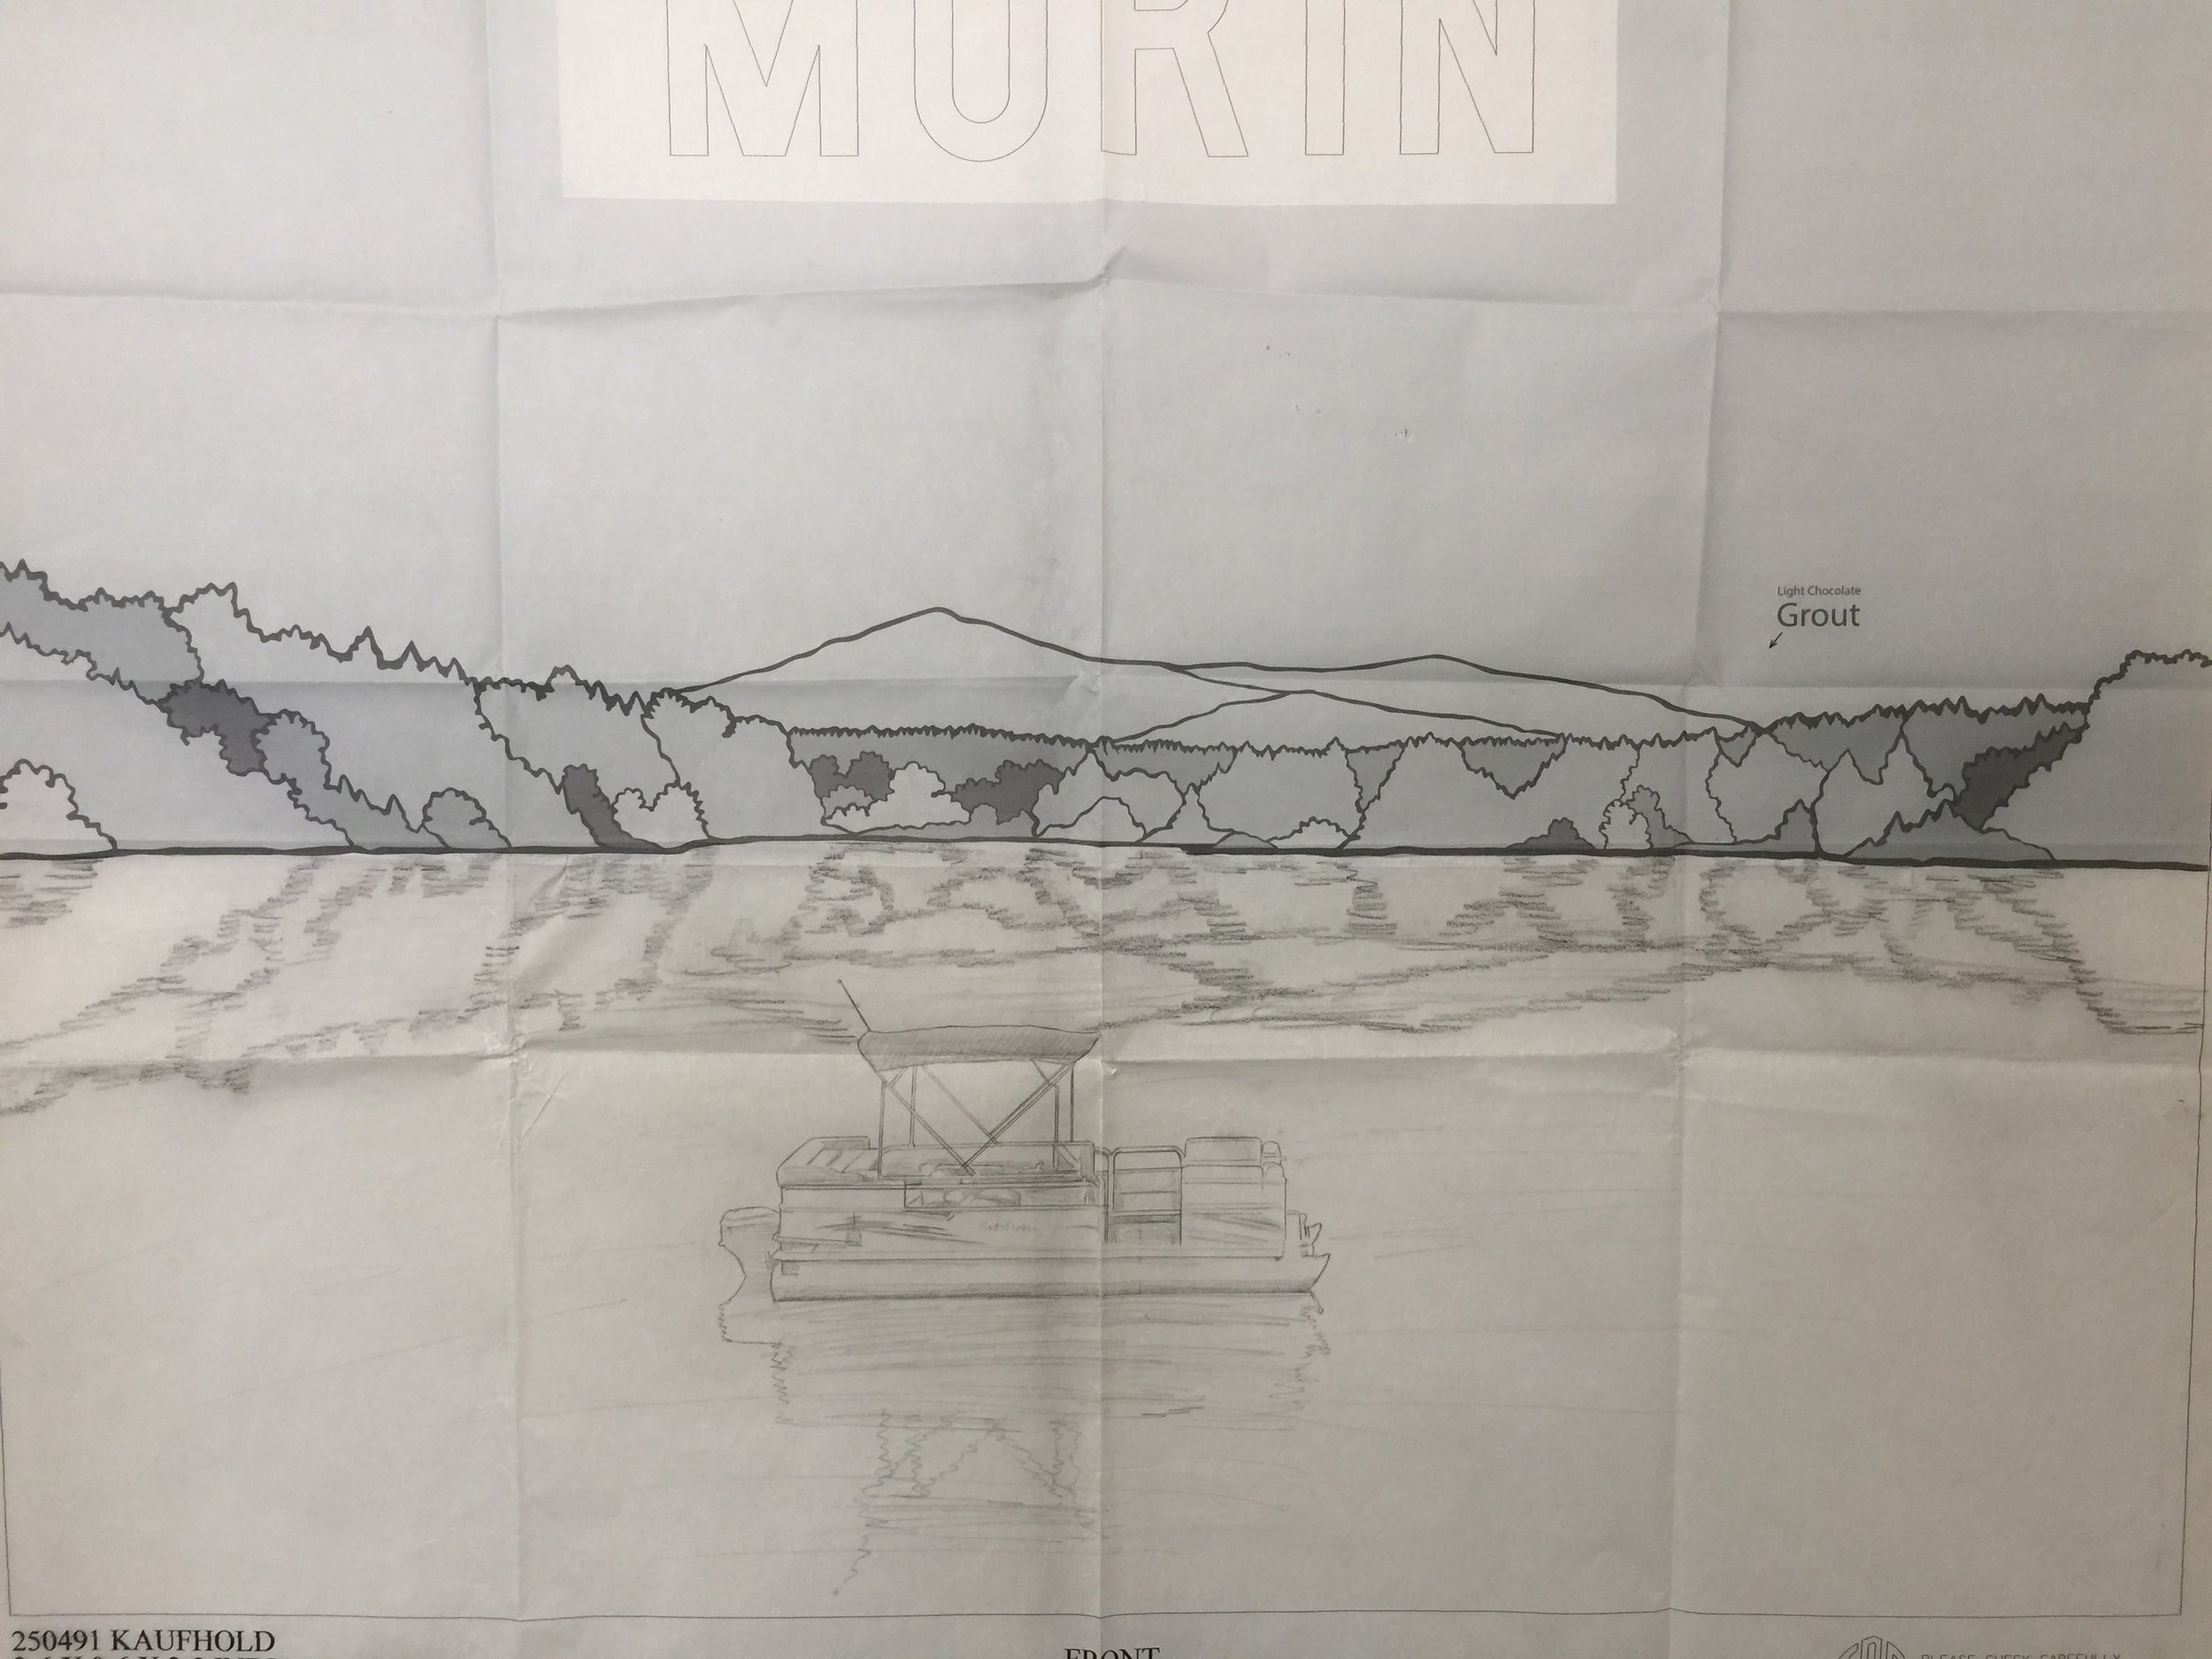 Above is a full-size drawing of a beautiful Hand Etching accompanied by a Colored Glass fall treeline and Mt. Monadnock skyline.